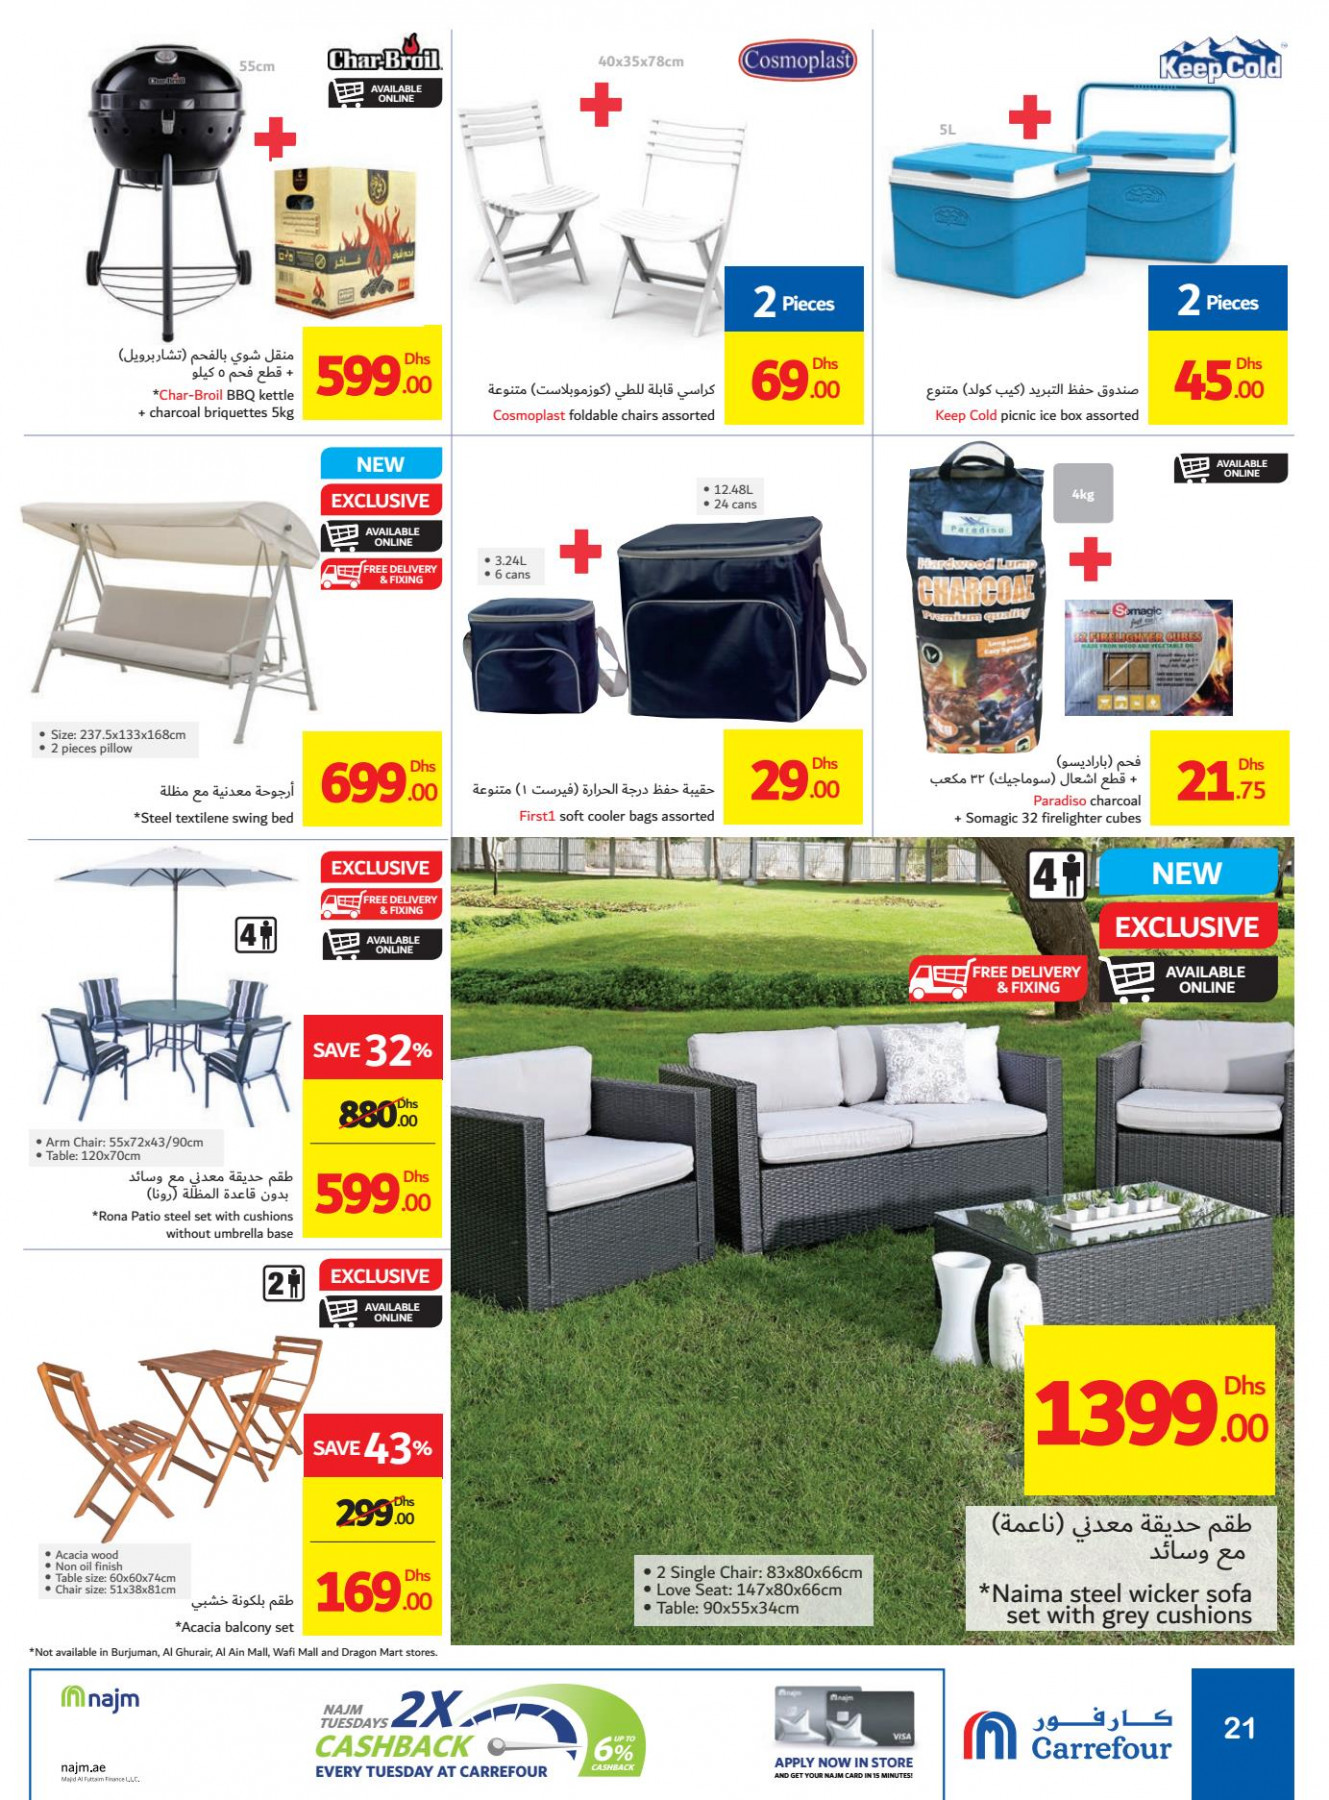 swing chair dragon mart white scoop dining chairs 1 free up to 40 off on advertised products from carrefour until 21st november offers promotions